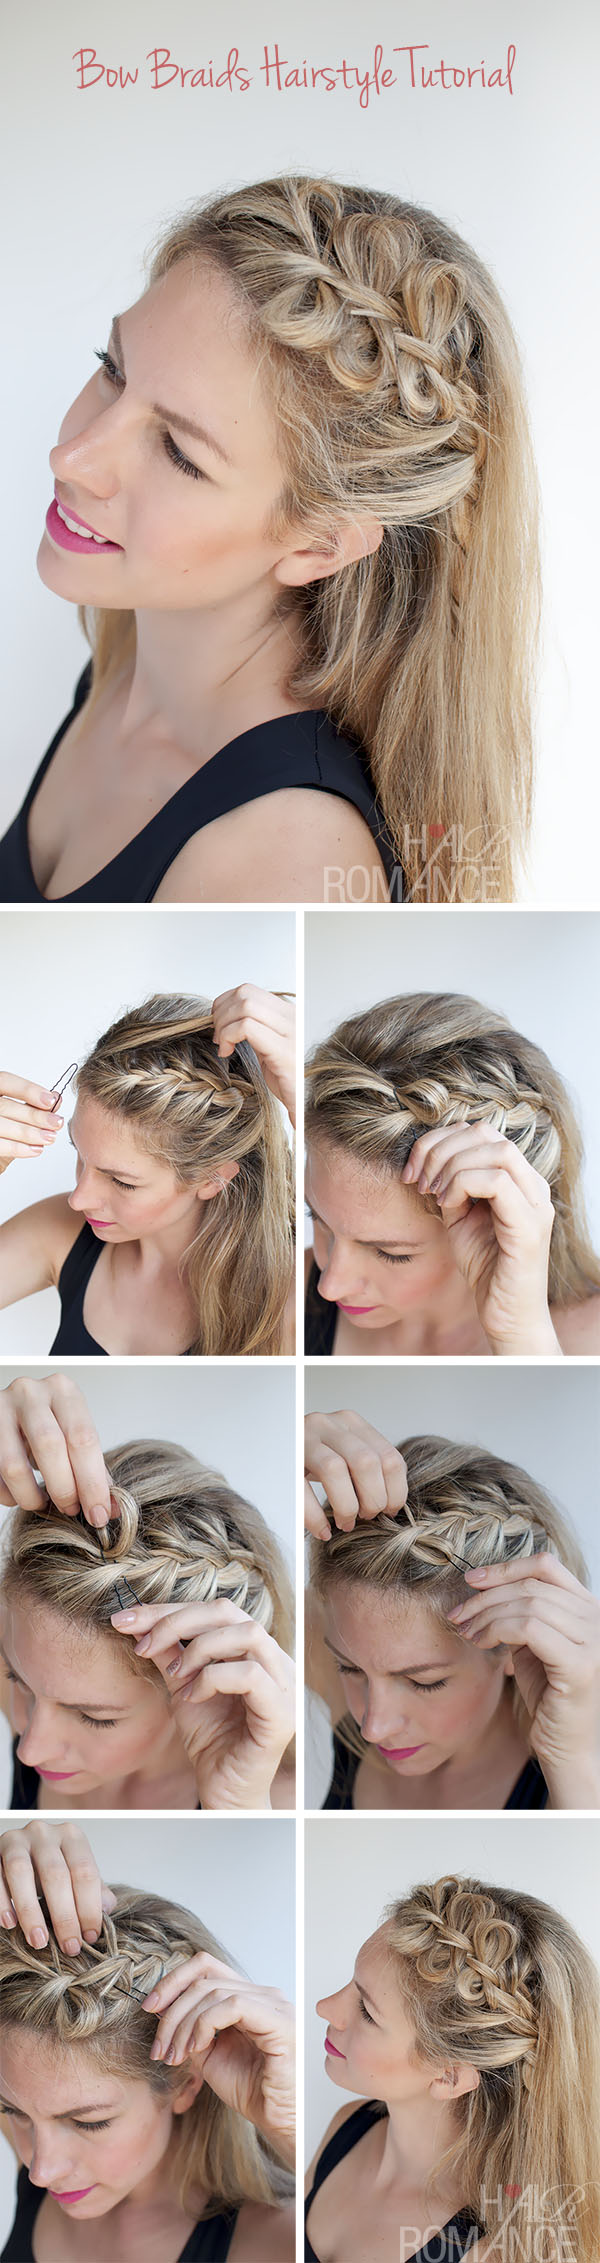 Bow braids hairstyle 1 Wonderful DIY Pretty Bow Braids Hairstyle